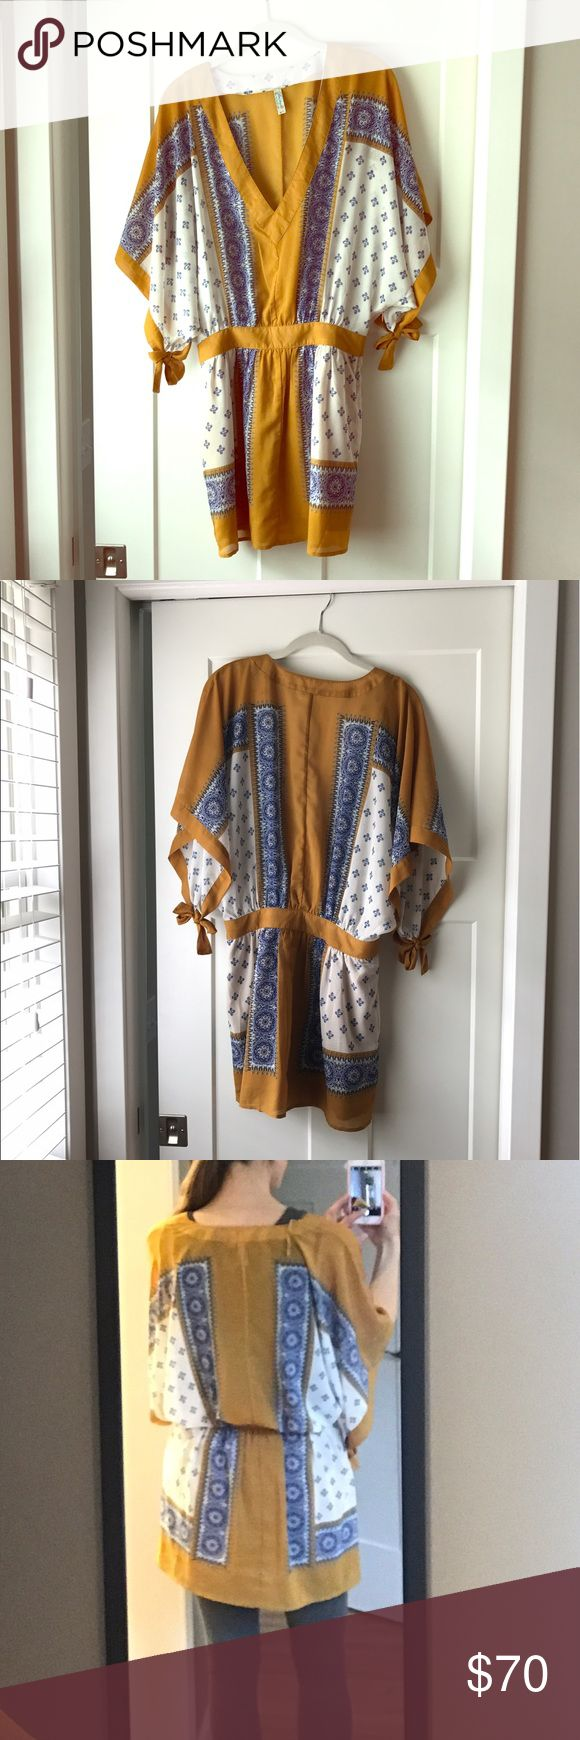 Free People Santa Cruz Dress Free People tunic dress. Side zipper. Wide bell sleeves. Cute with leggings or without in warmer months! Free People Dresses Mini